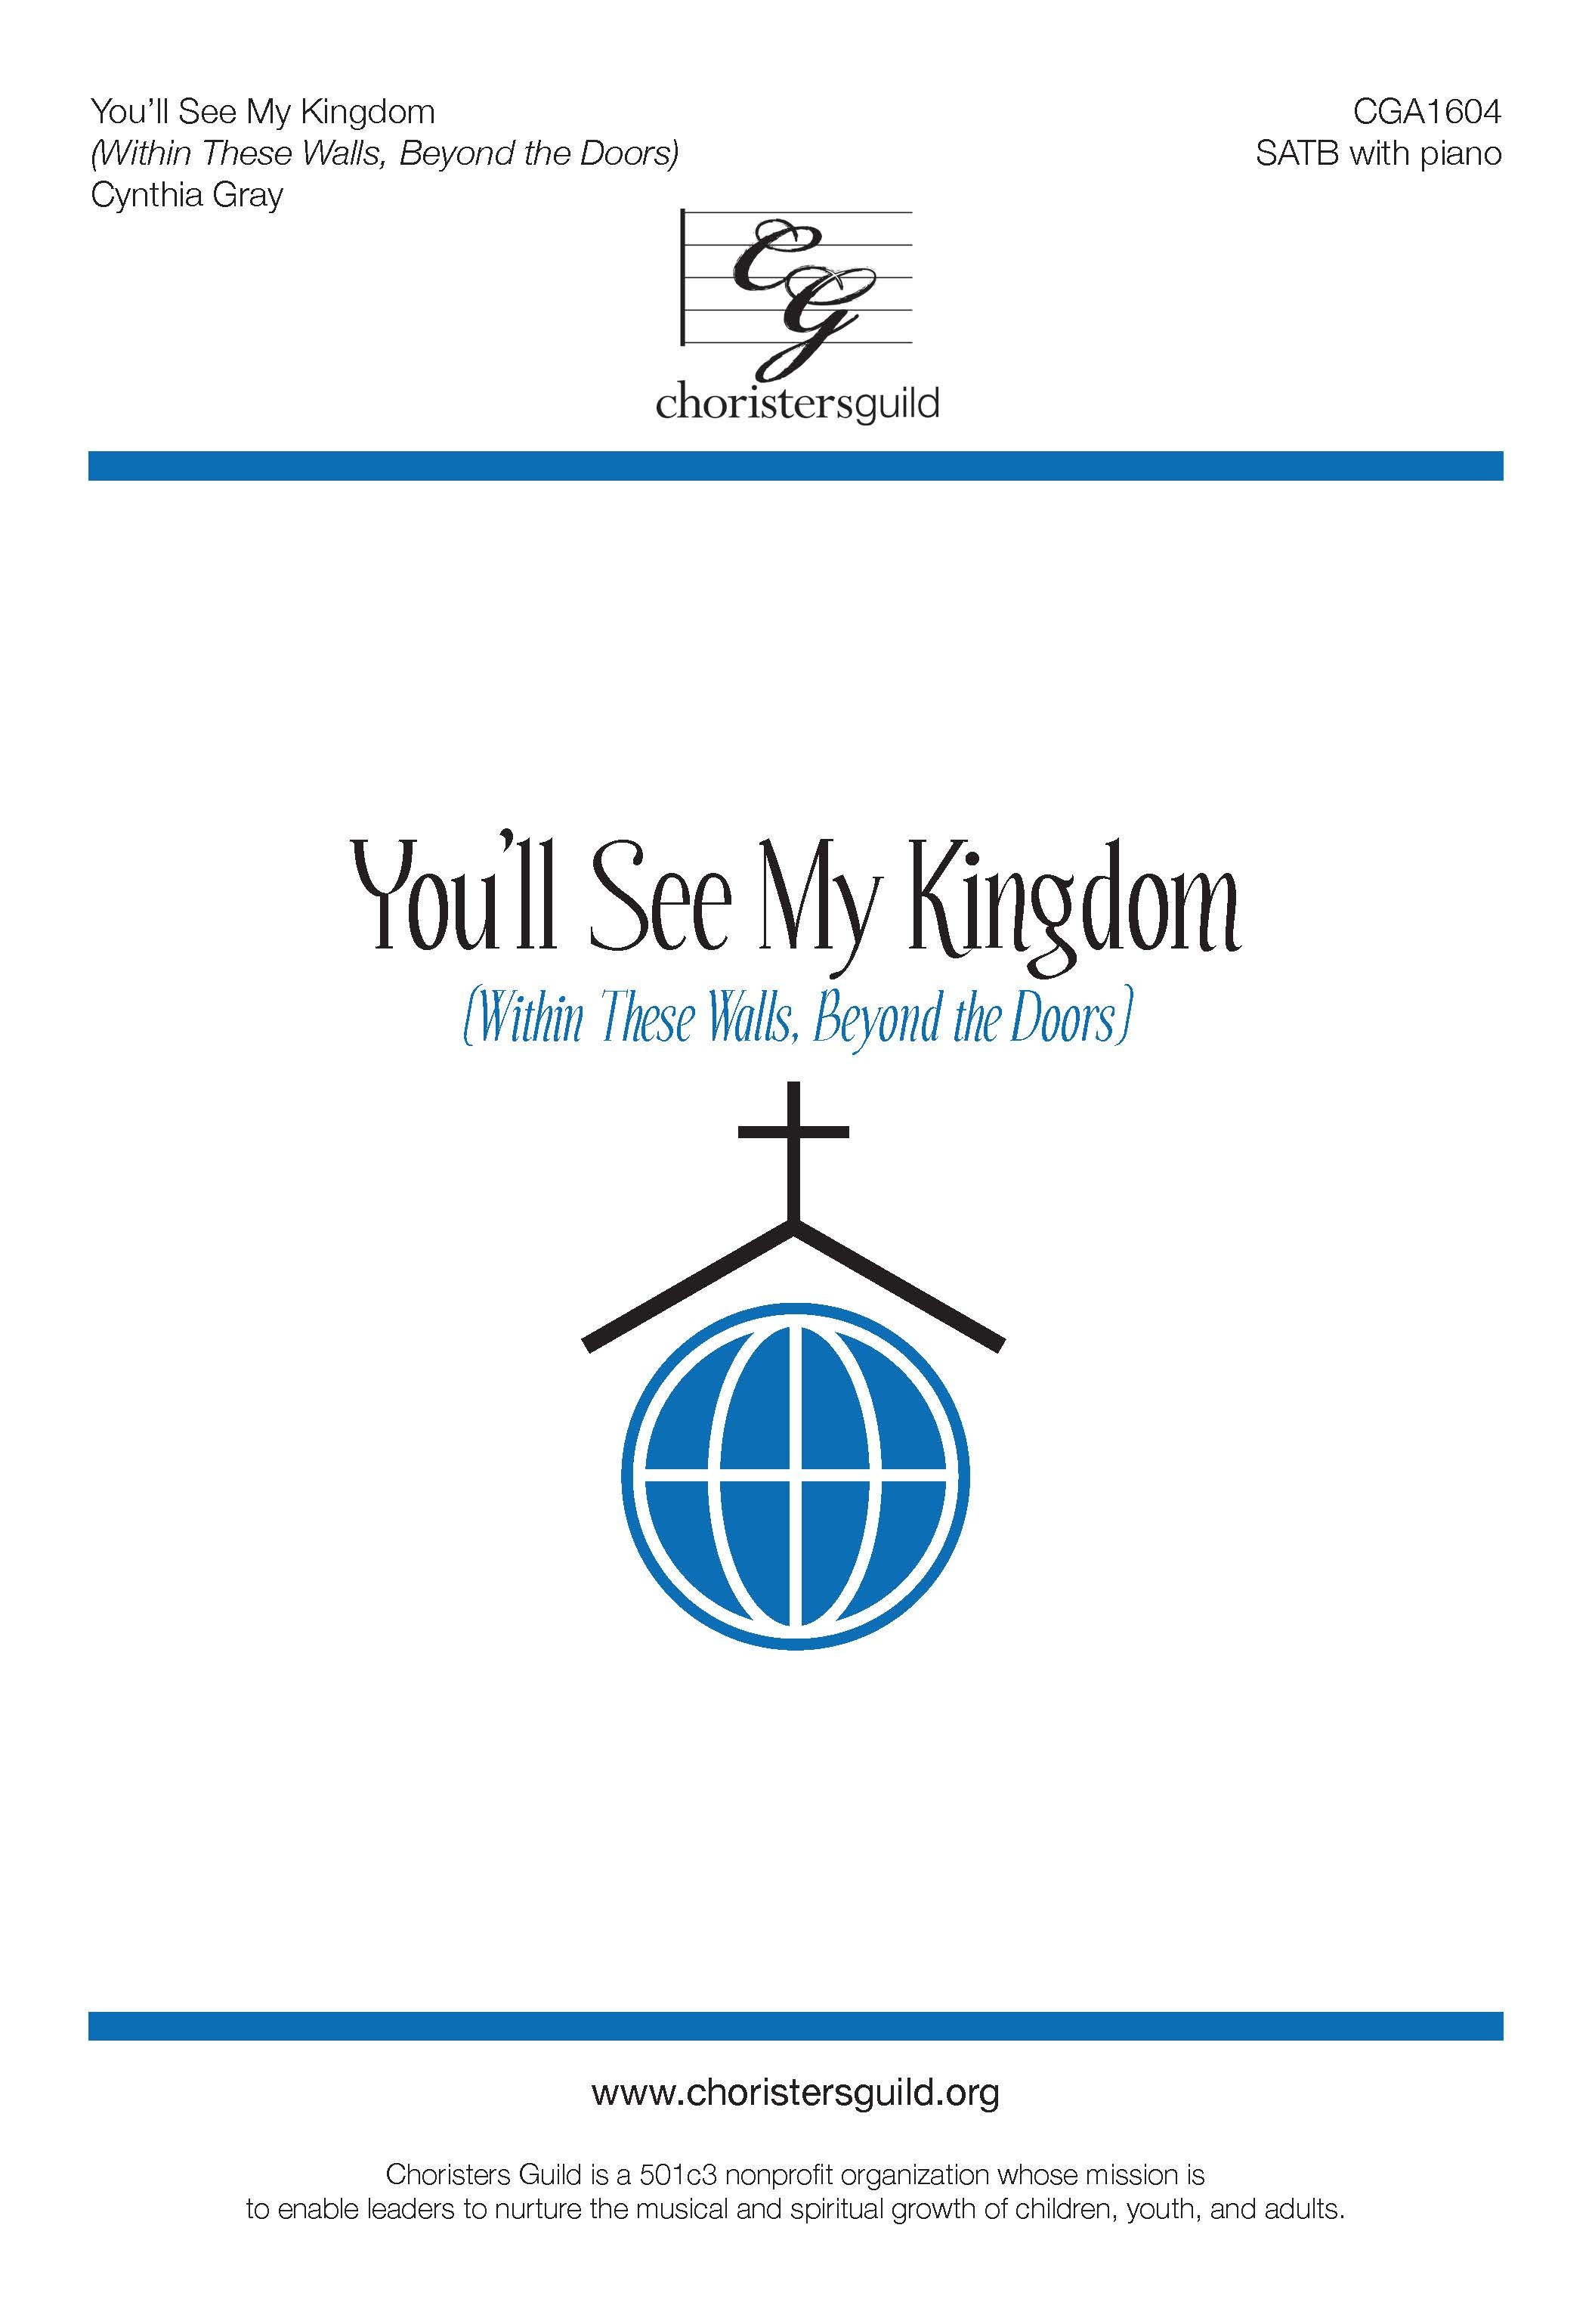 You'll See My Kingdom (Within These Walls, Beyond the Doors) - SATB